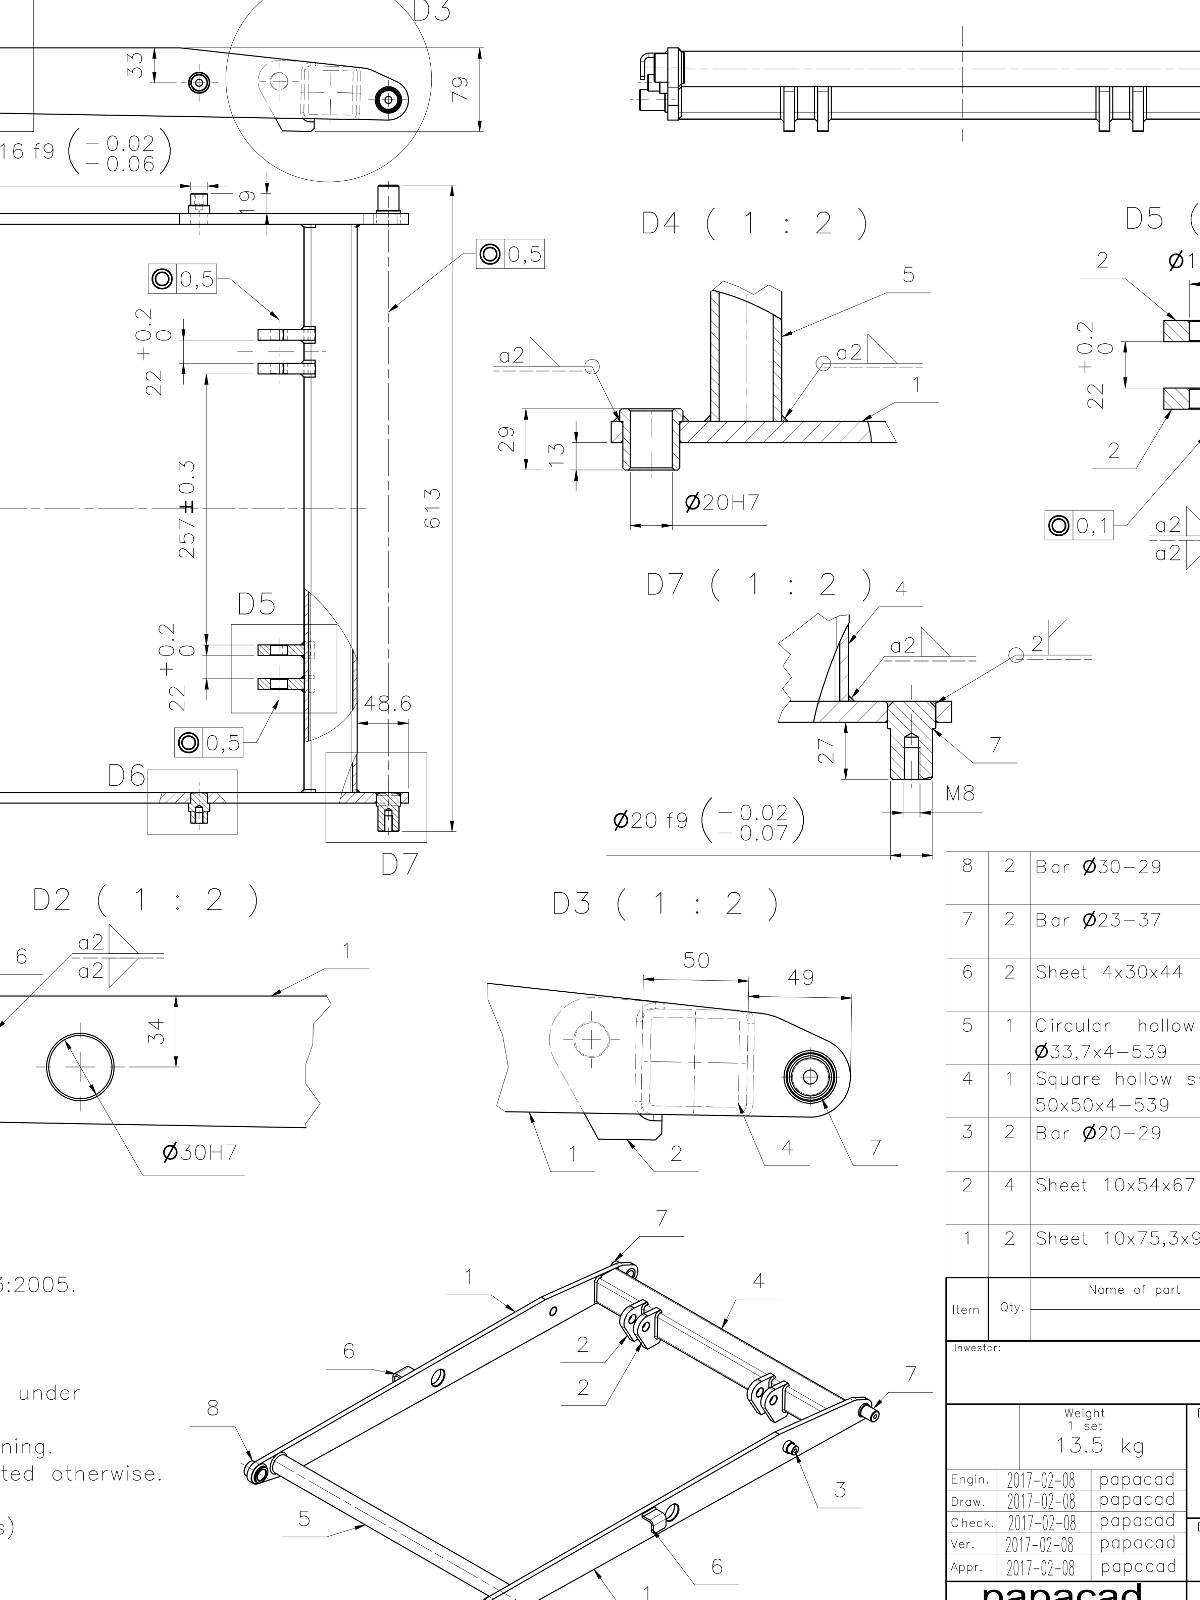 Building Cad Drawing at GetDrawings com | Free for personal